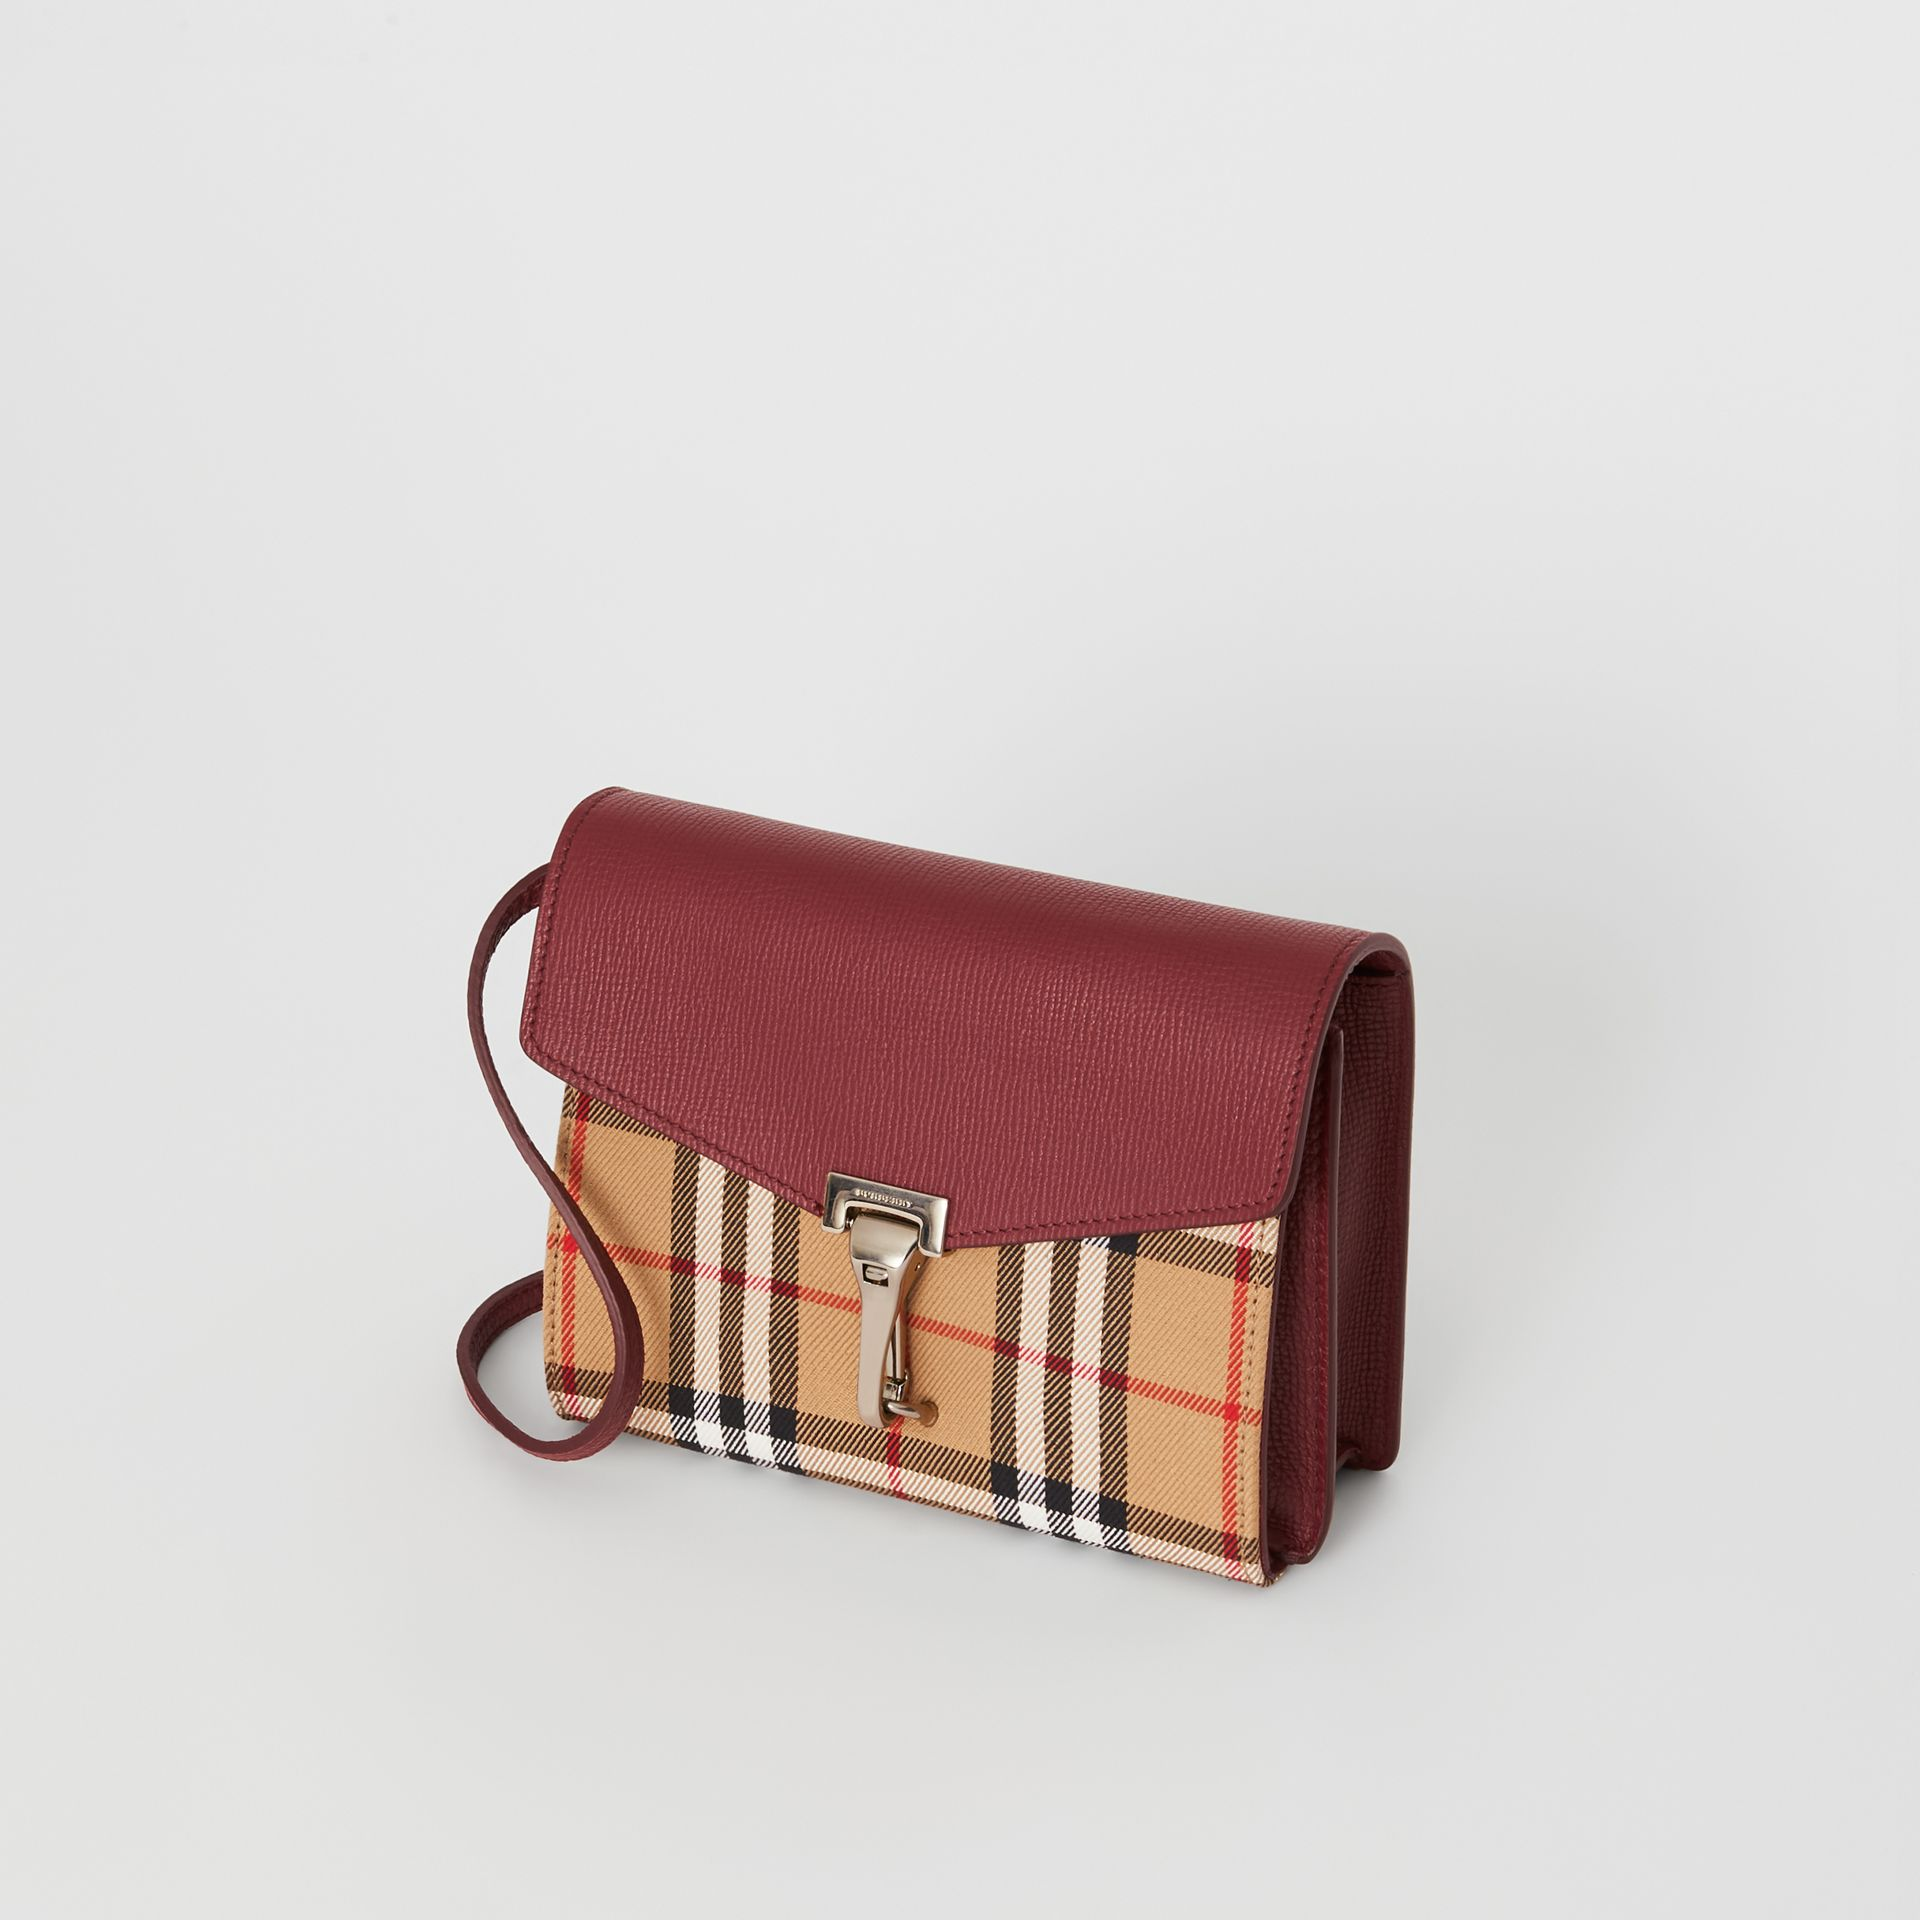 Mini Leather and Vintage Check Crossbody Bag in Crimson - Women | Burberry Hong Kong S.A.R - gallery image 2